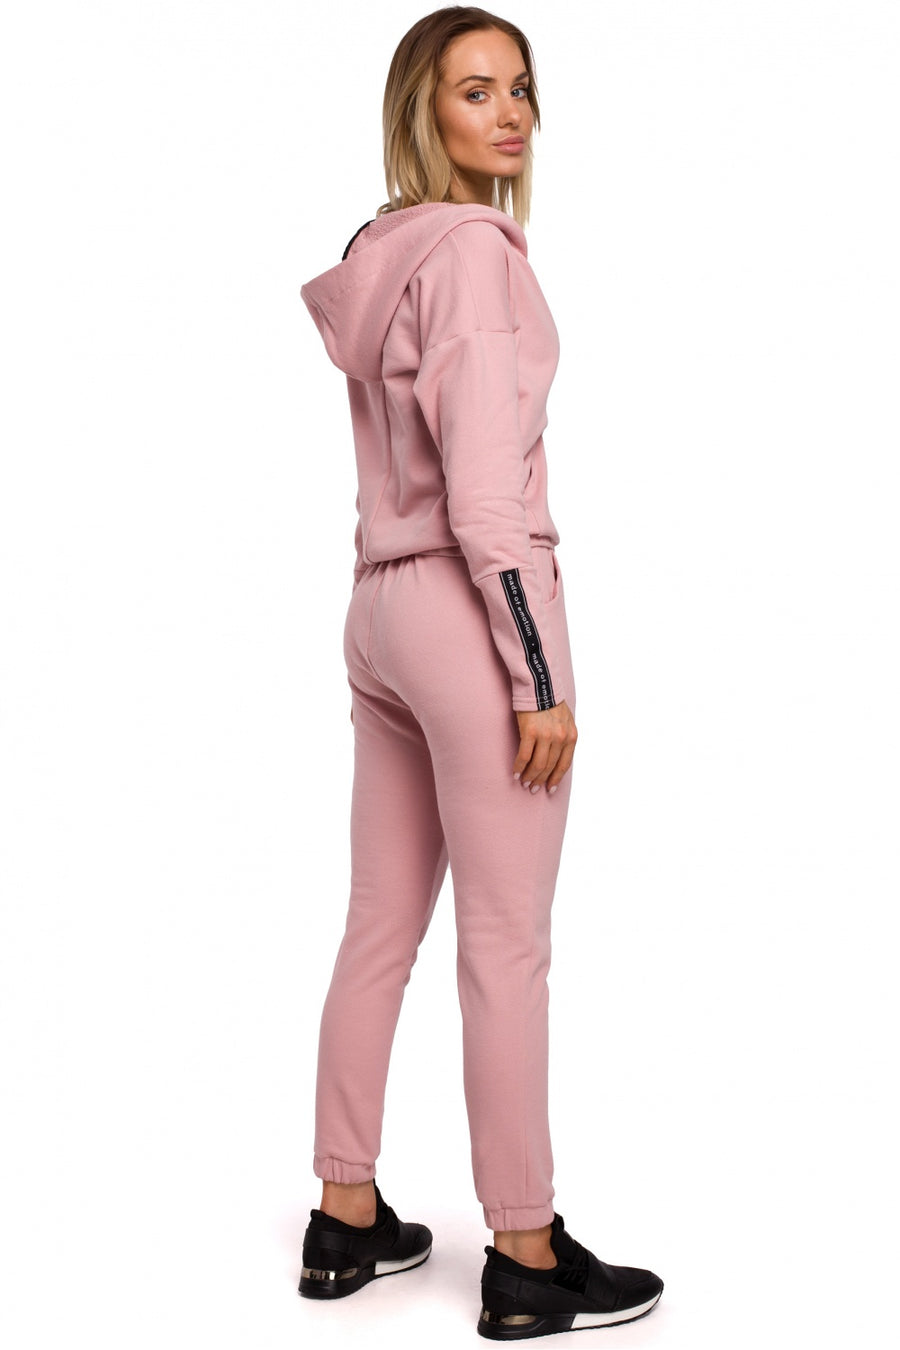 Tracksuit trousers model 147945 Moe